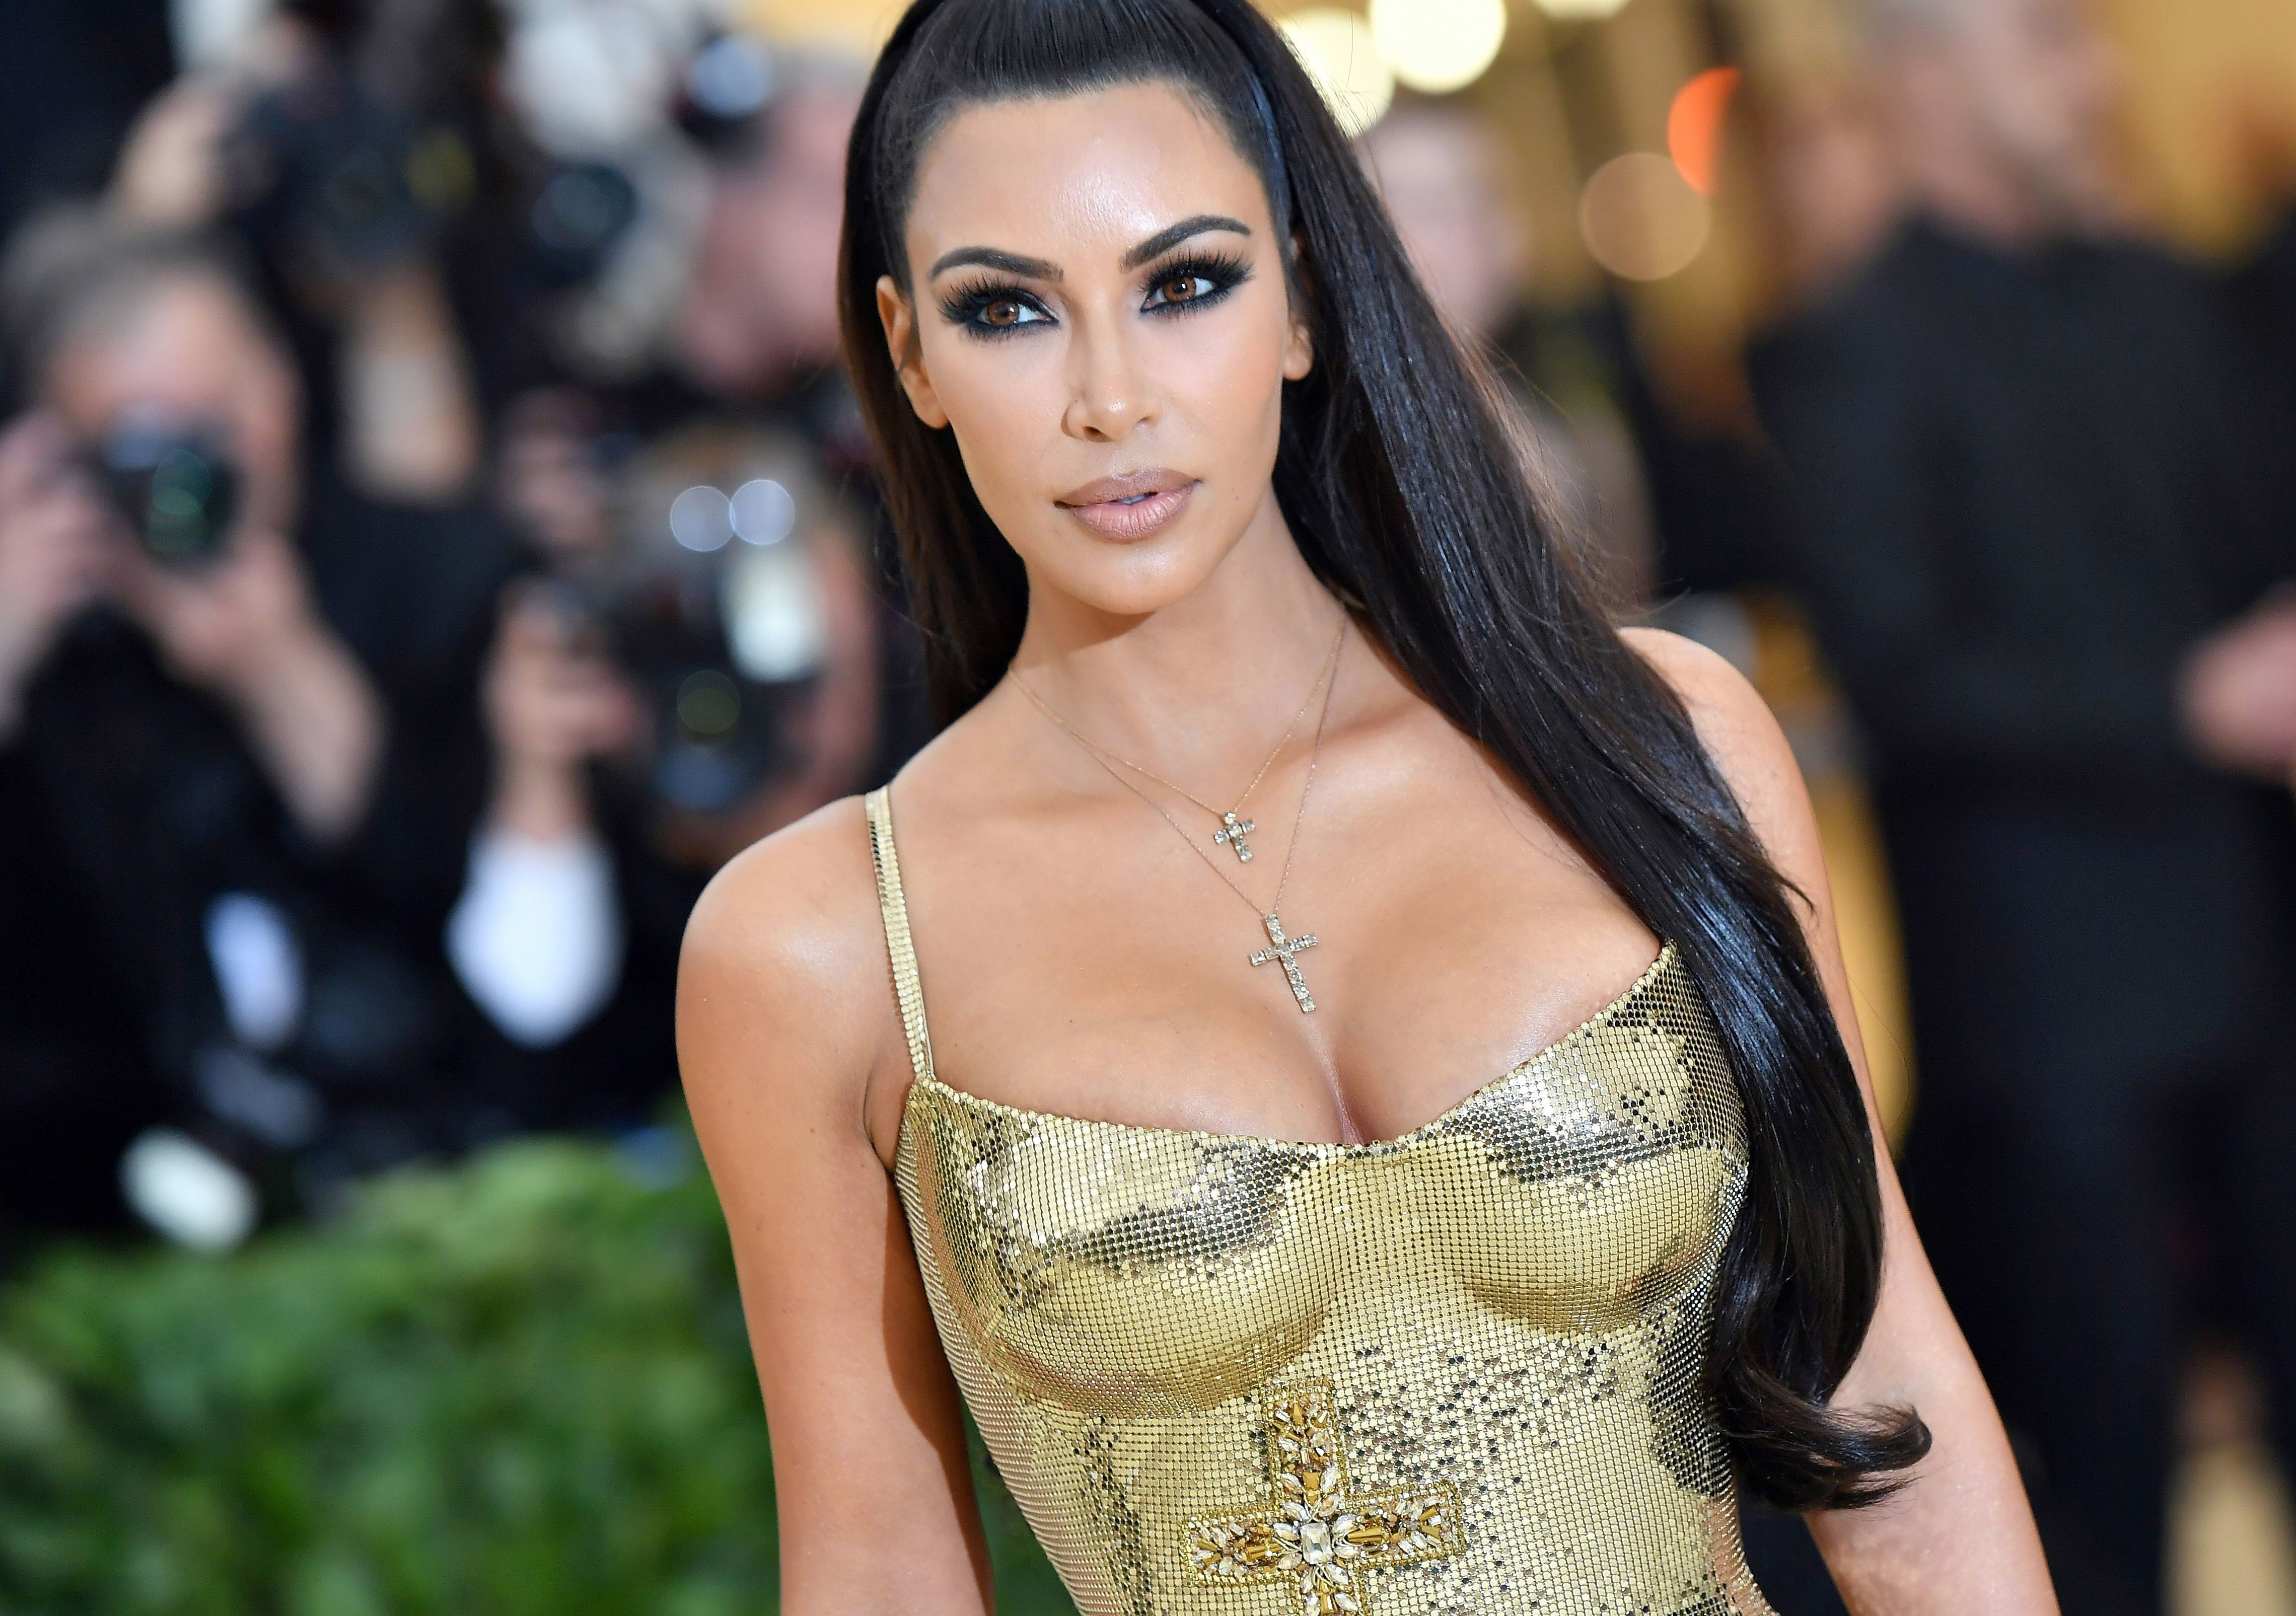 Kim Kardashian recently drew criticism for an Instagram ad where she endorsed a lollipop that claims to suppress one's appeti